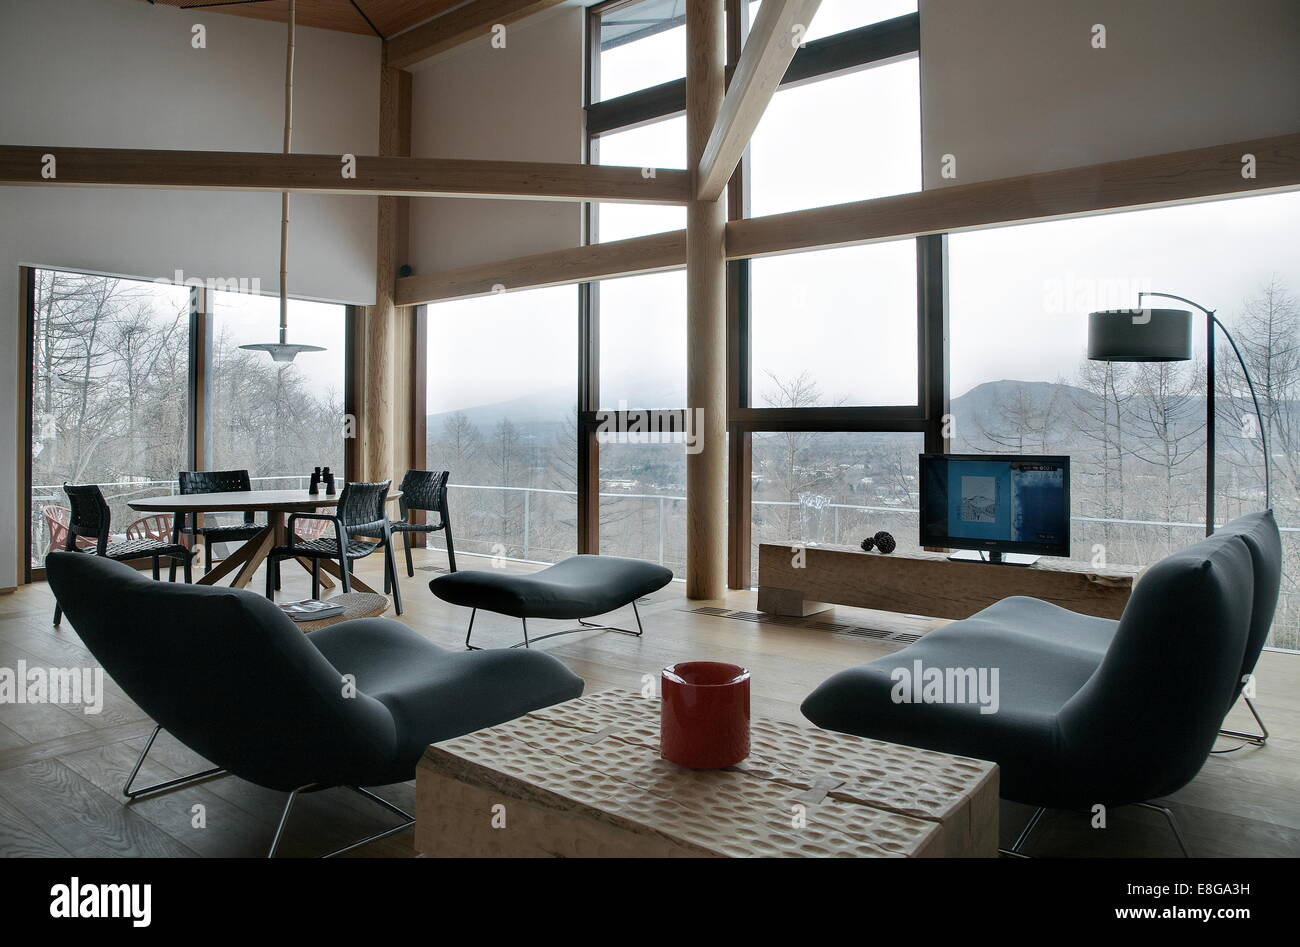 Interior of a minimal living room in a japanese house - Stock Image